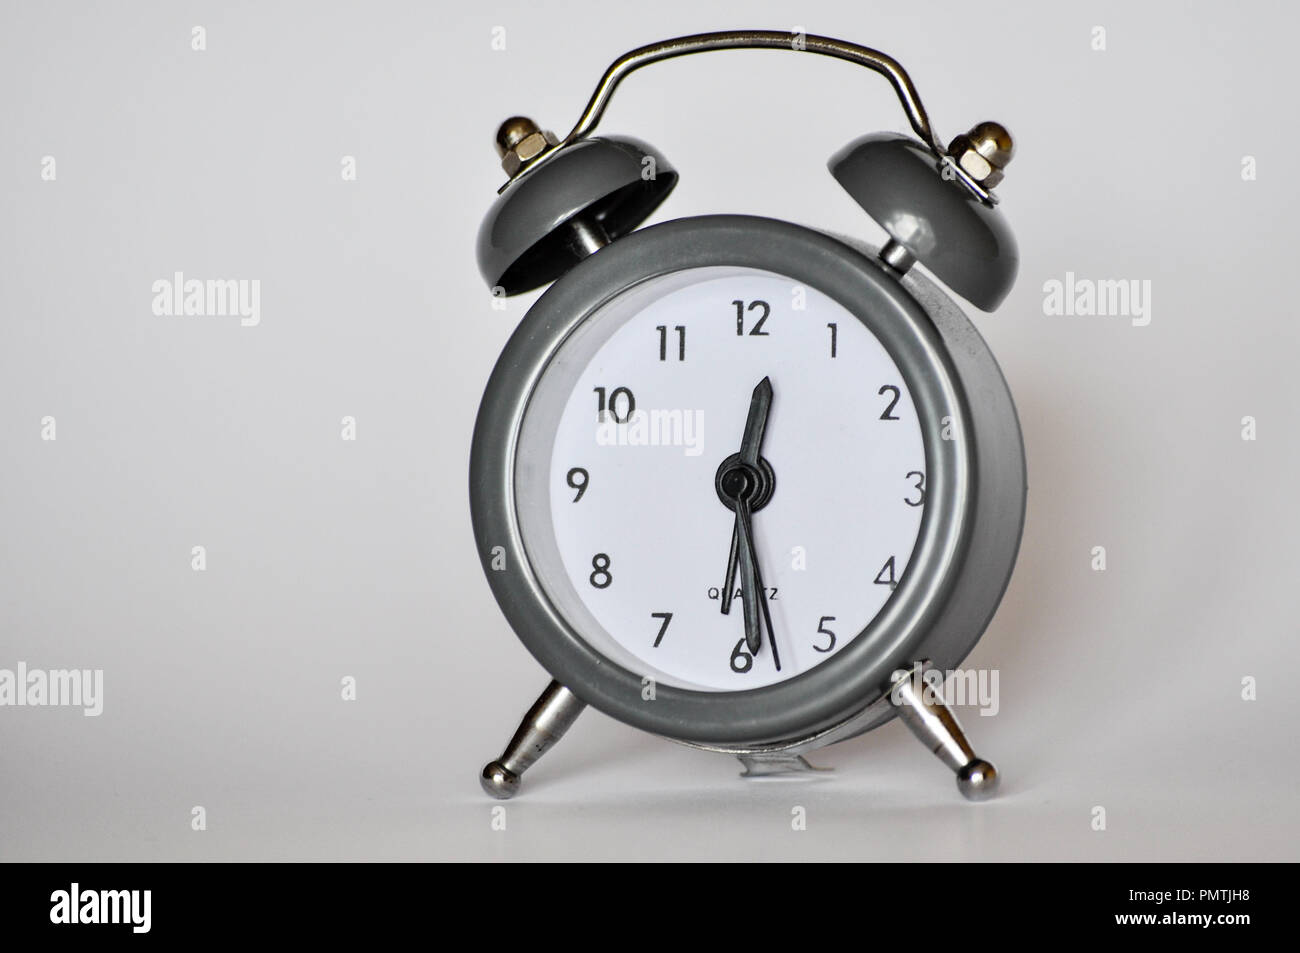 Little, vintage alarm clock showing current hour on a grey background - Stock Image